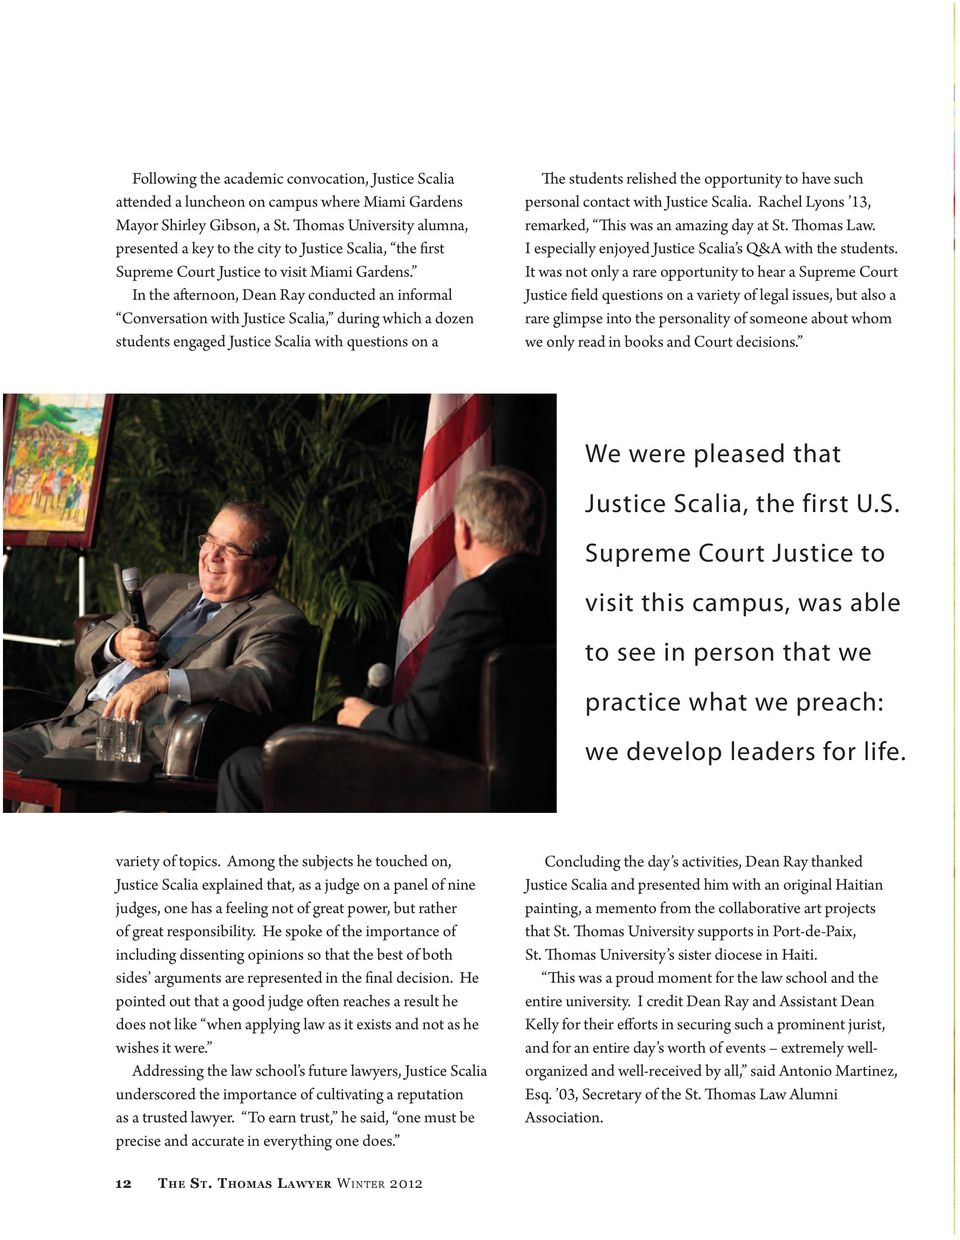 In the afternoon, Dean Ray conducted an informal Conversation with Justice Scalia, during which a dozen students engaged Justice Scalia with questions on a The students relished the opportunity to